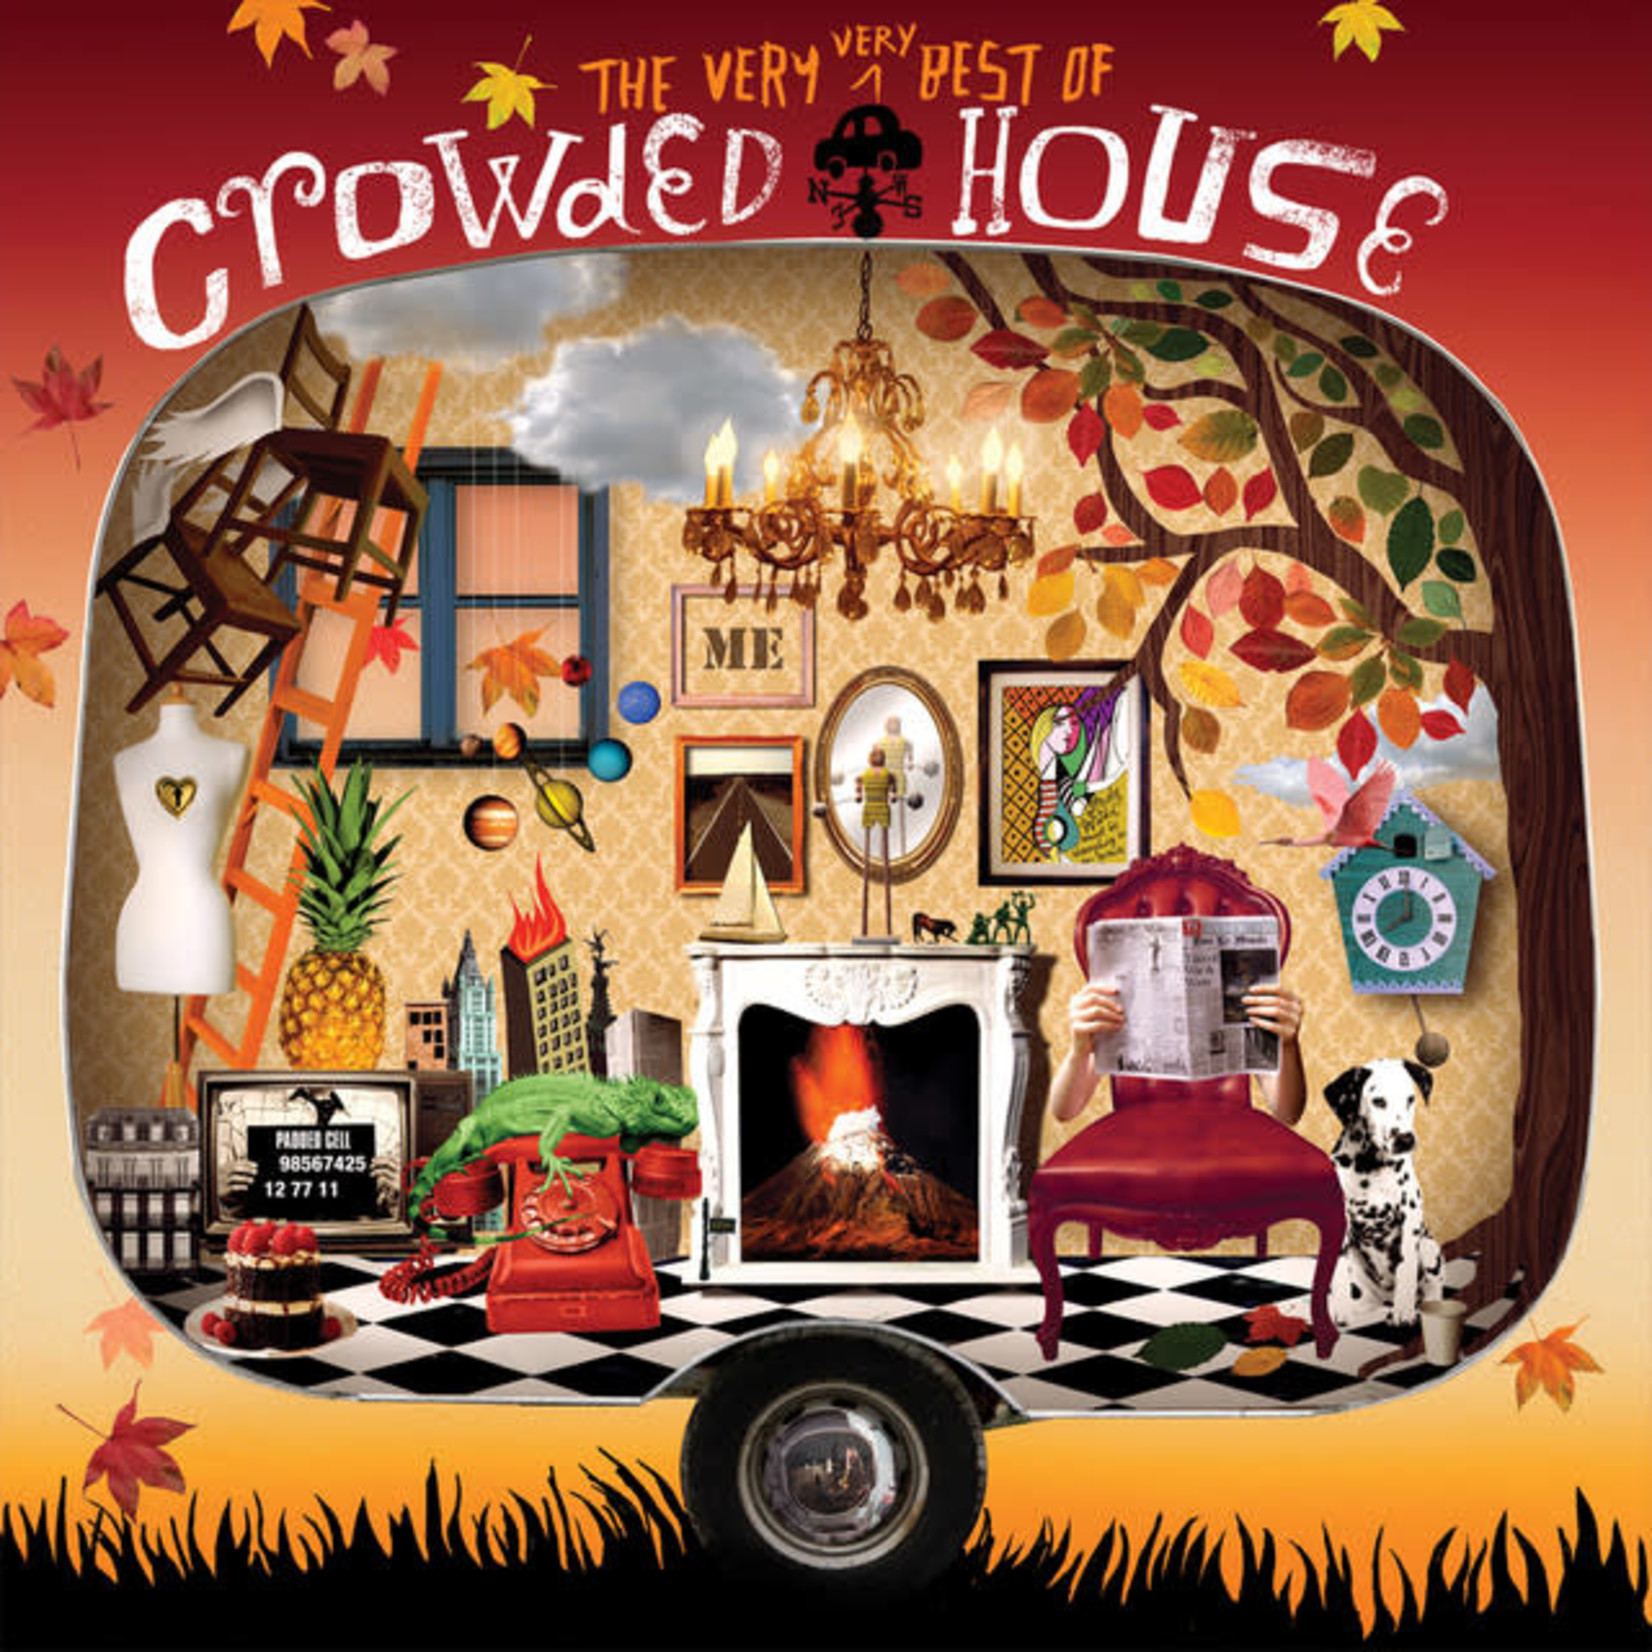 Vinyl Crowded House - The Very Very Best Of